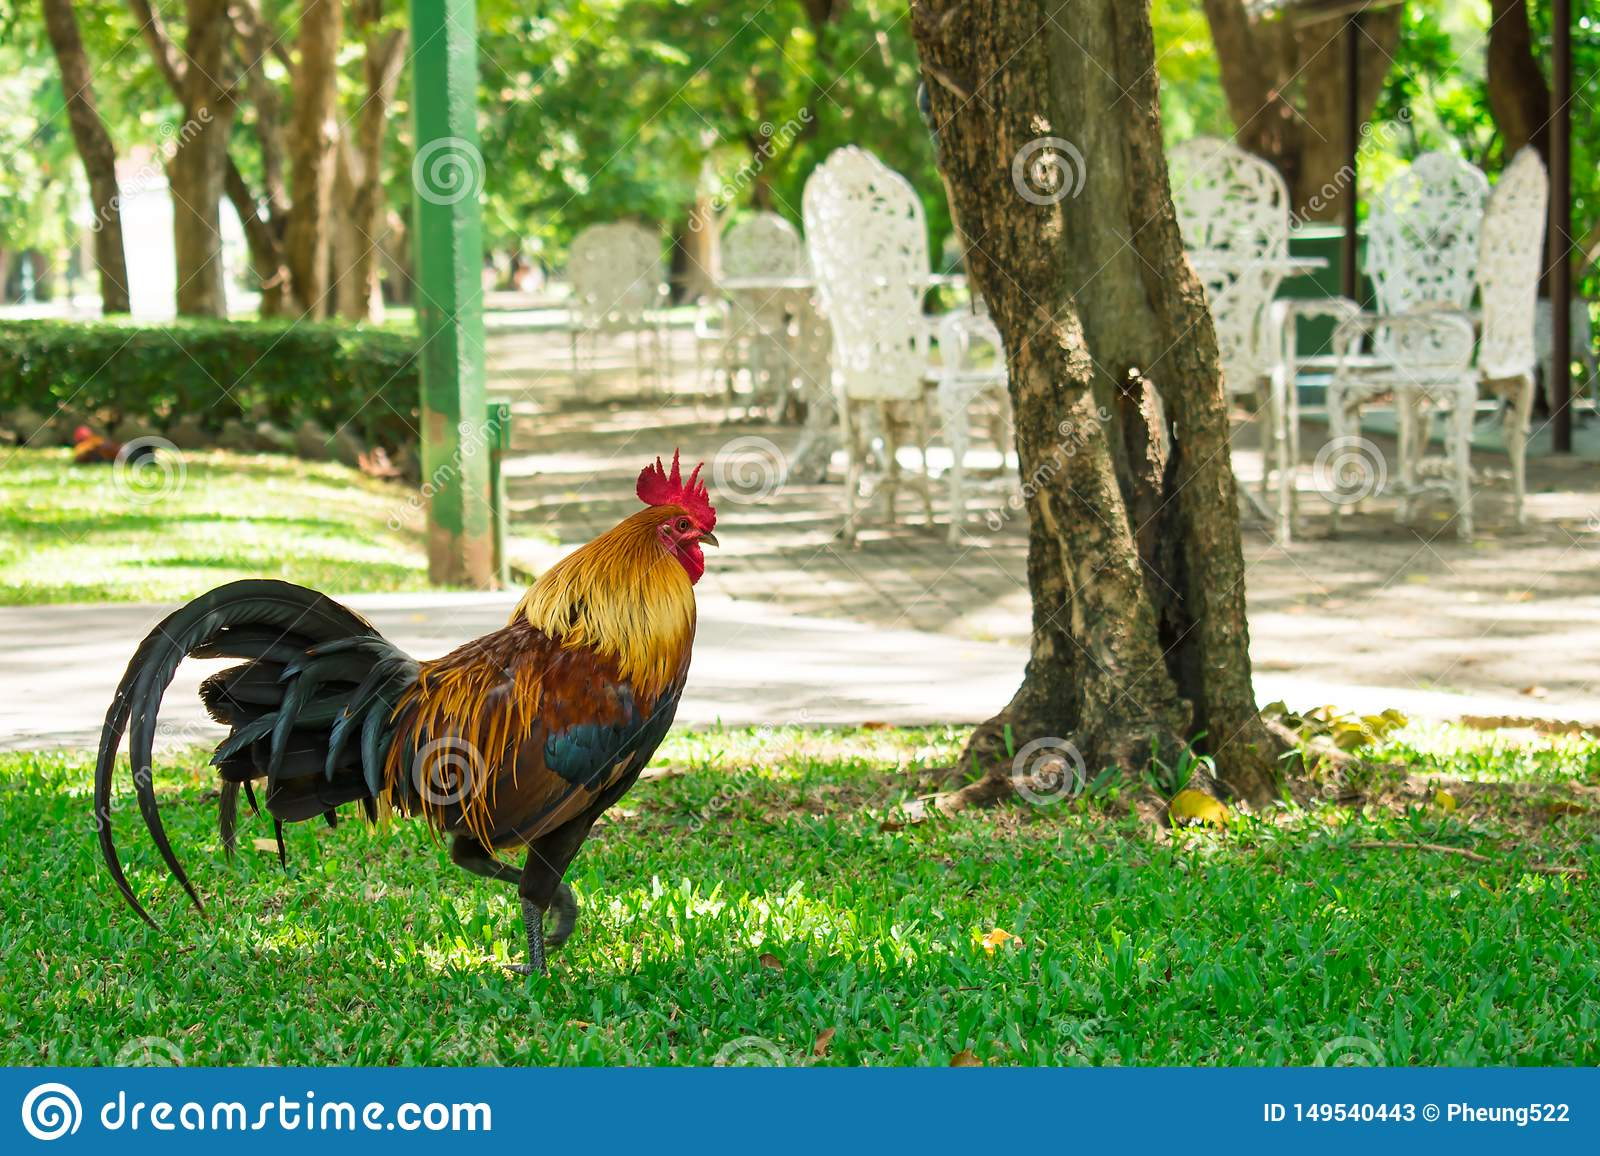 Chickens walking in the park.Natural background.